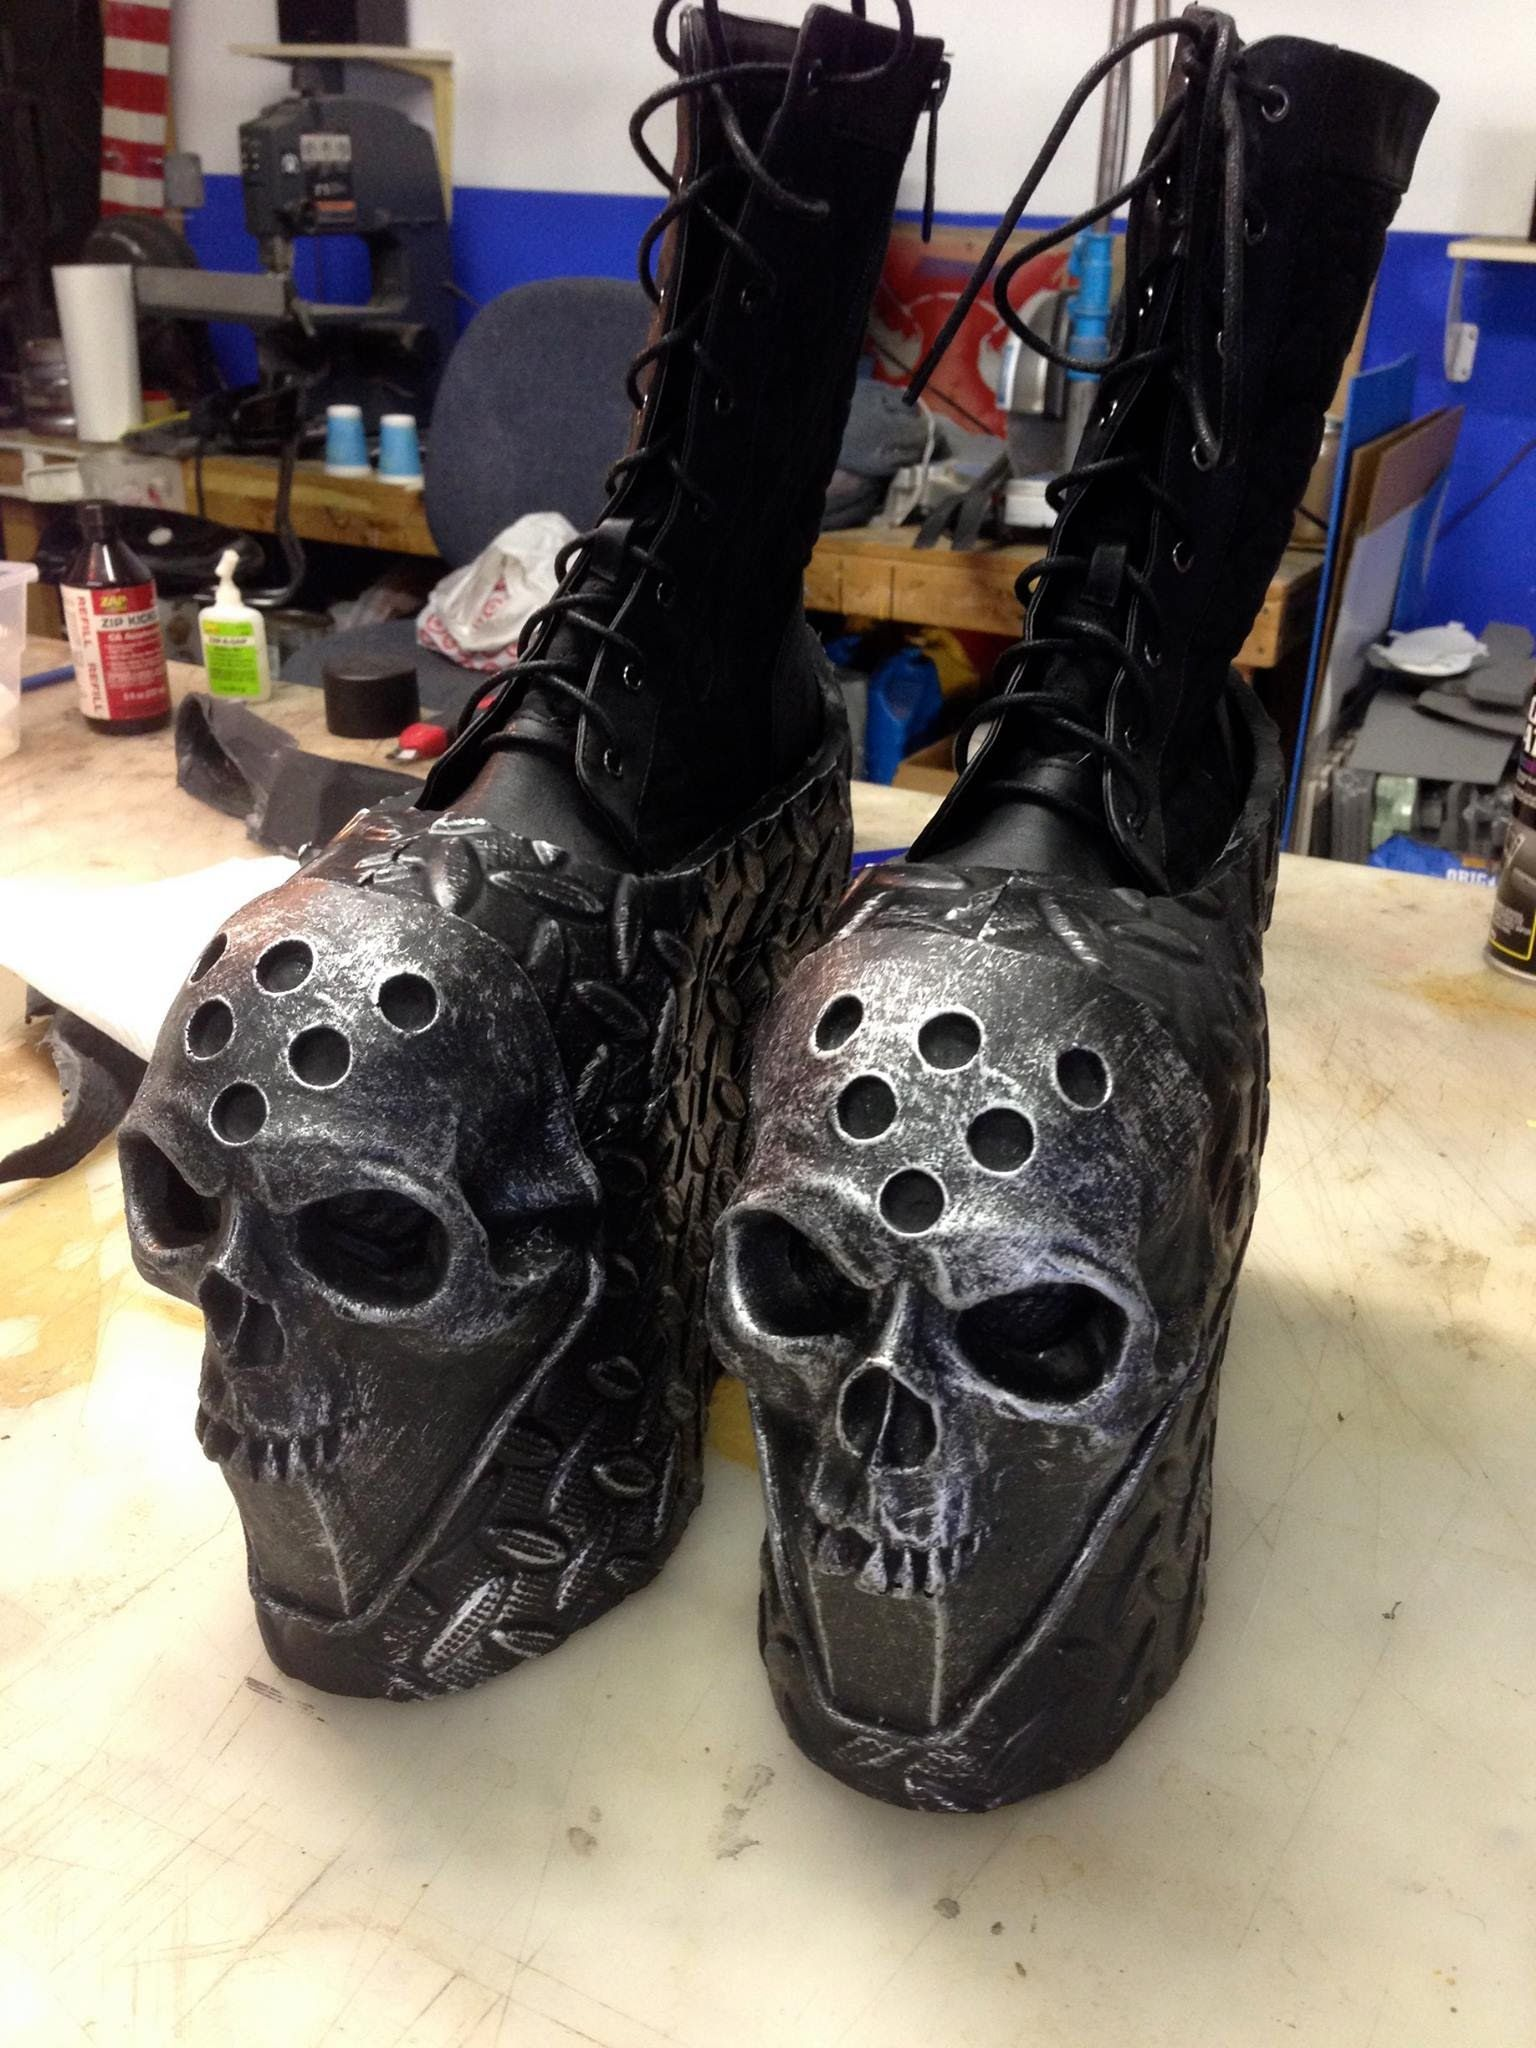 How To Make Platform Shoes For Cosplay Tutorial Part 2 Even Longer Than The Last One But Very In Depth Cosplay Diy Cosplay Tutorial Cosplay Shoes